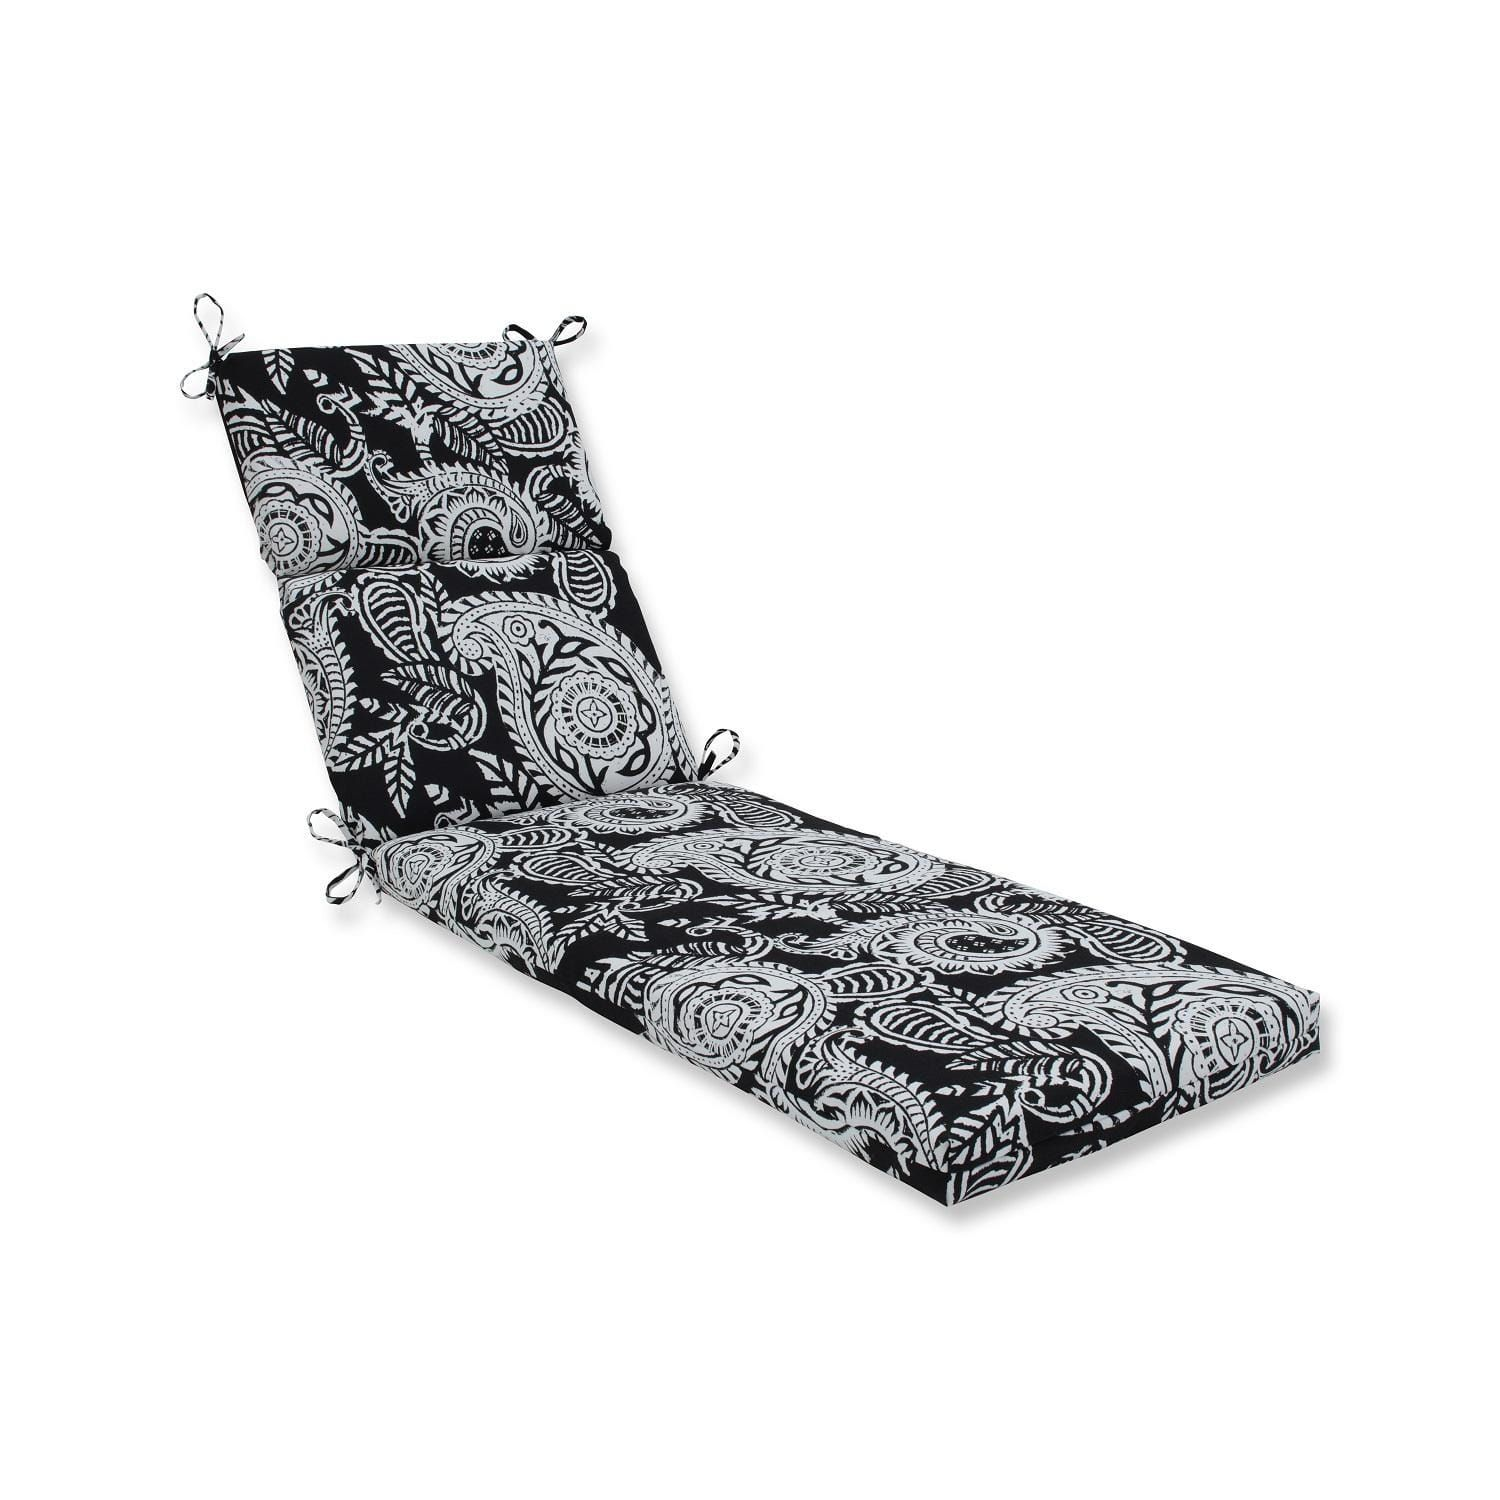 72.5 White Paisley Swirl And Black Outdoor Patio Chaise Lounge Cushion,  Outdoor Cushion